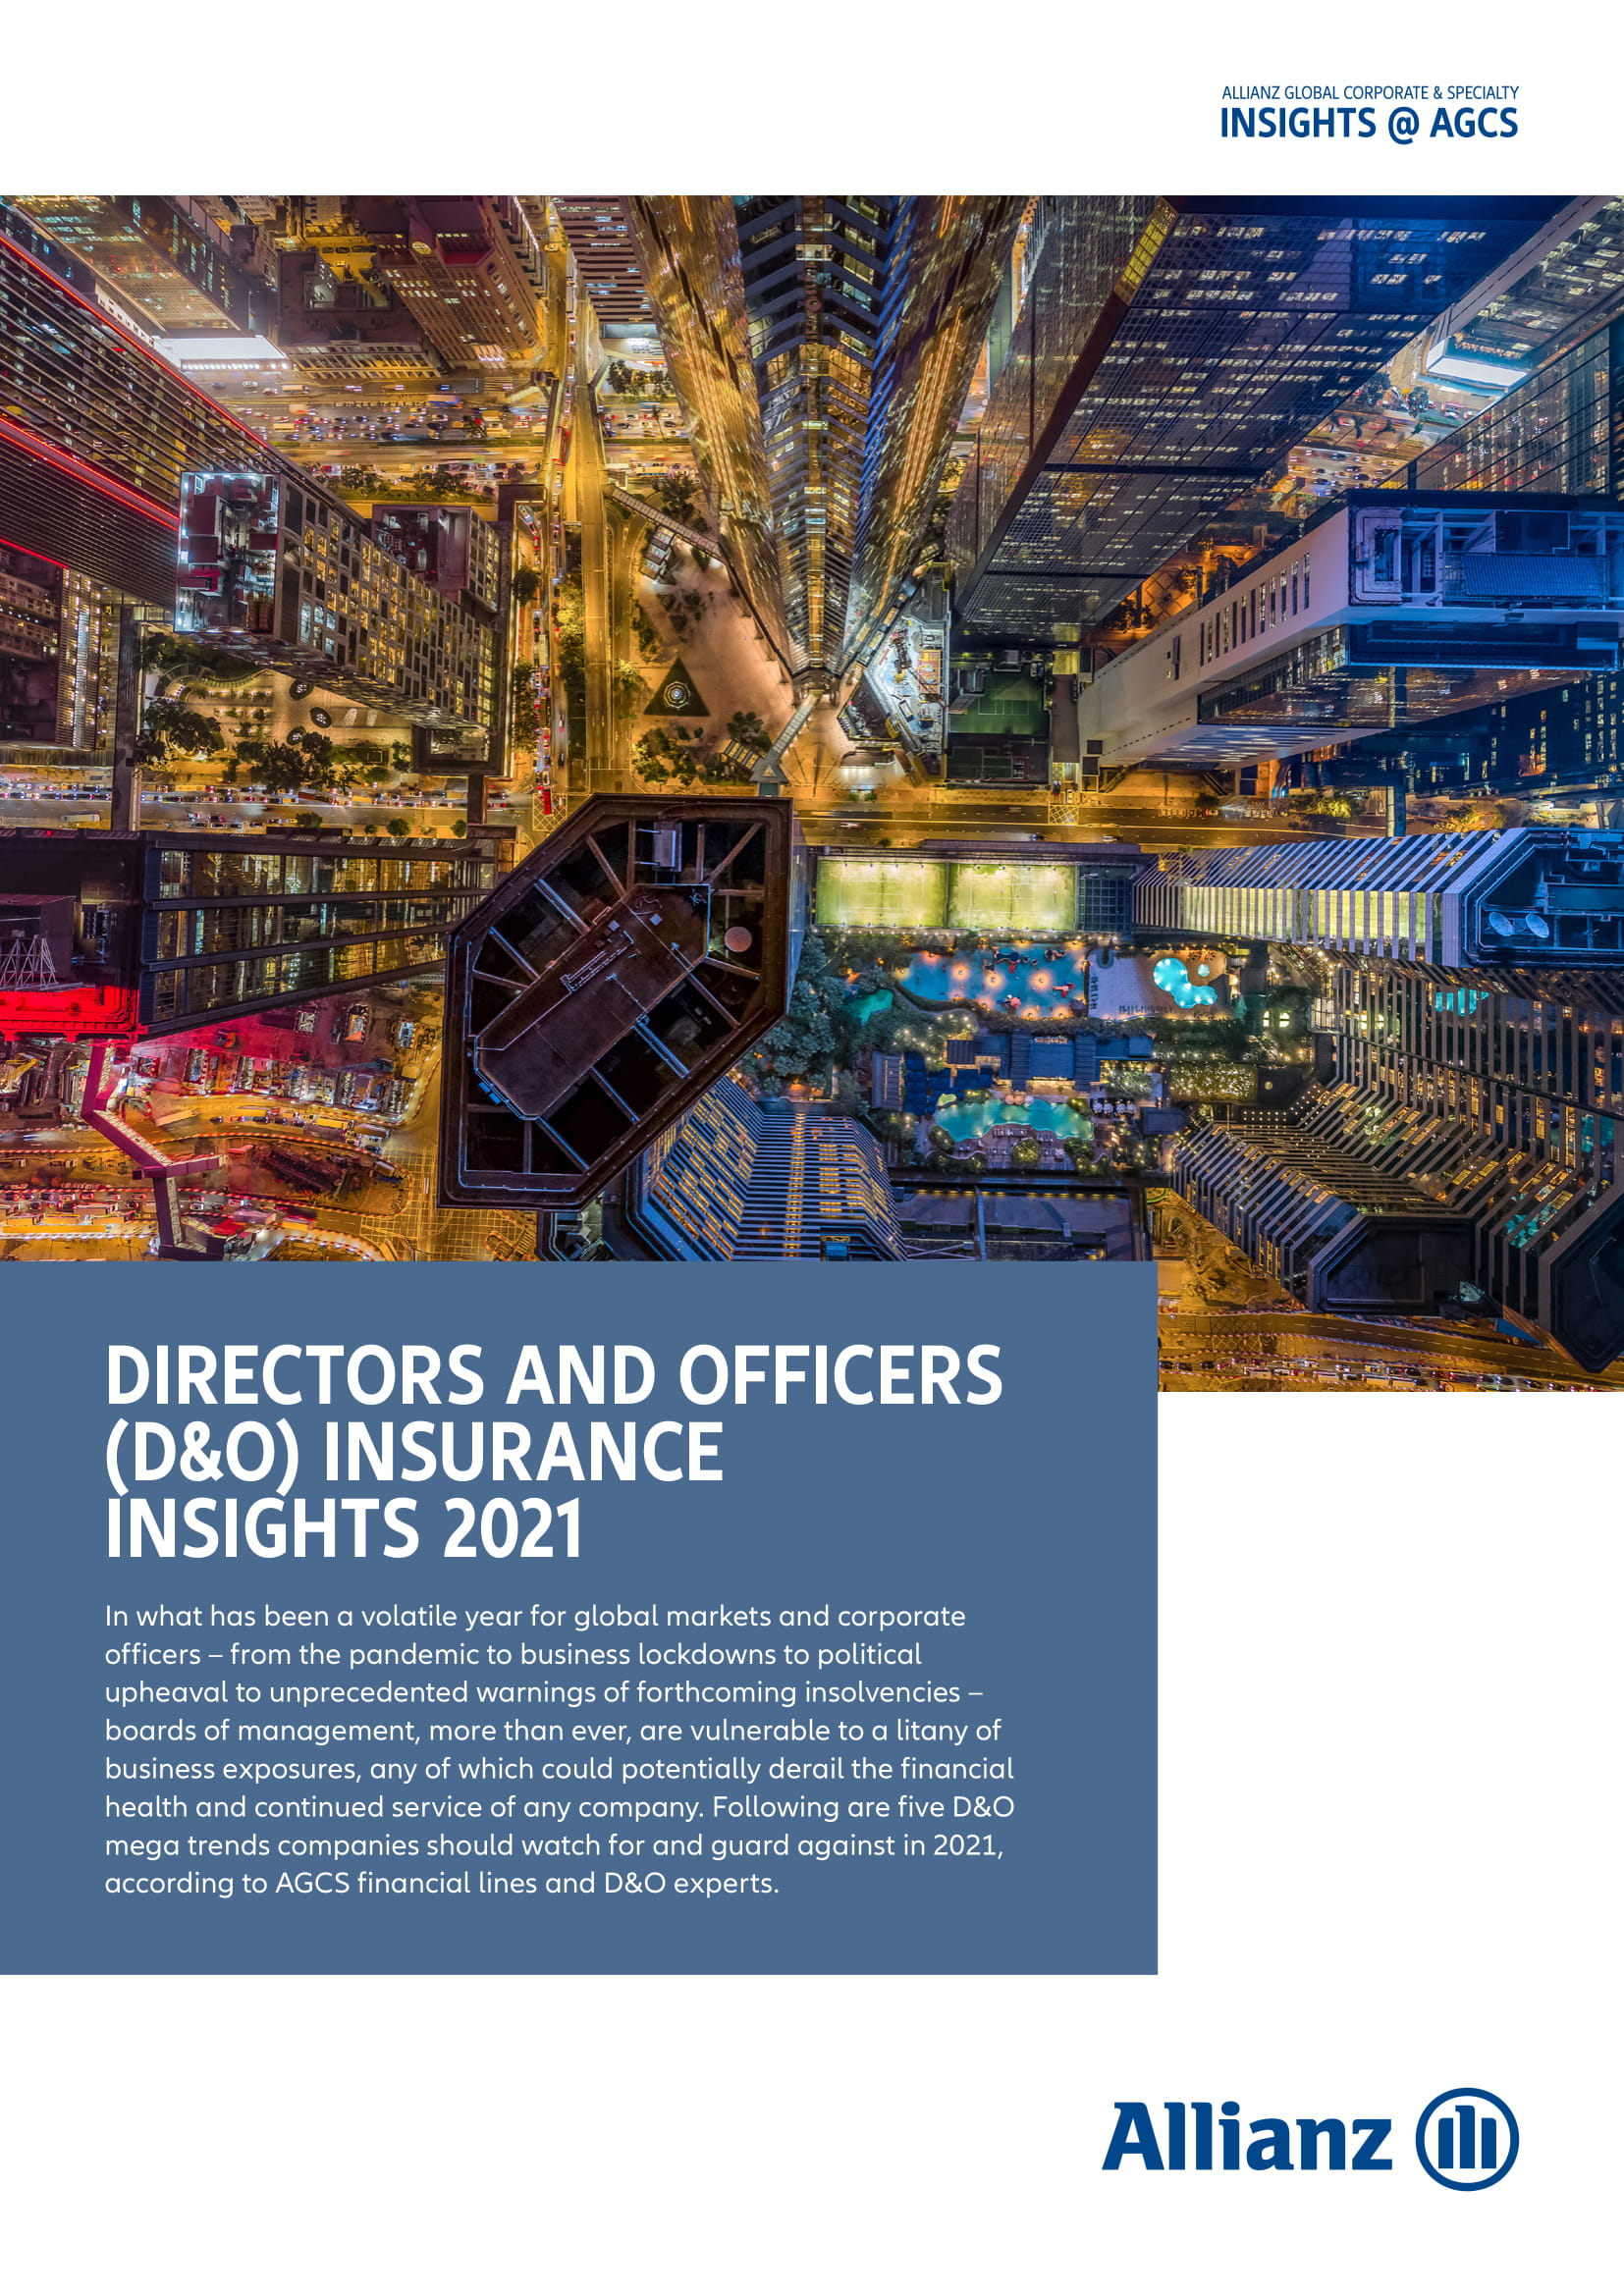 Directors and Officers Insurance Insights 2021